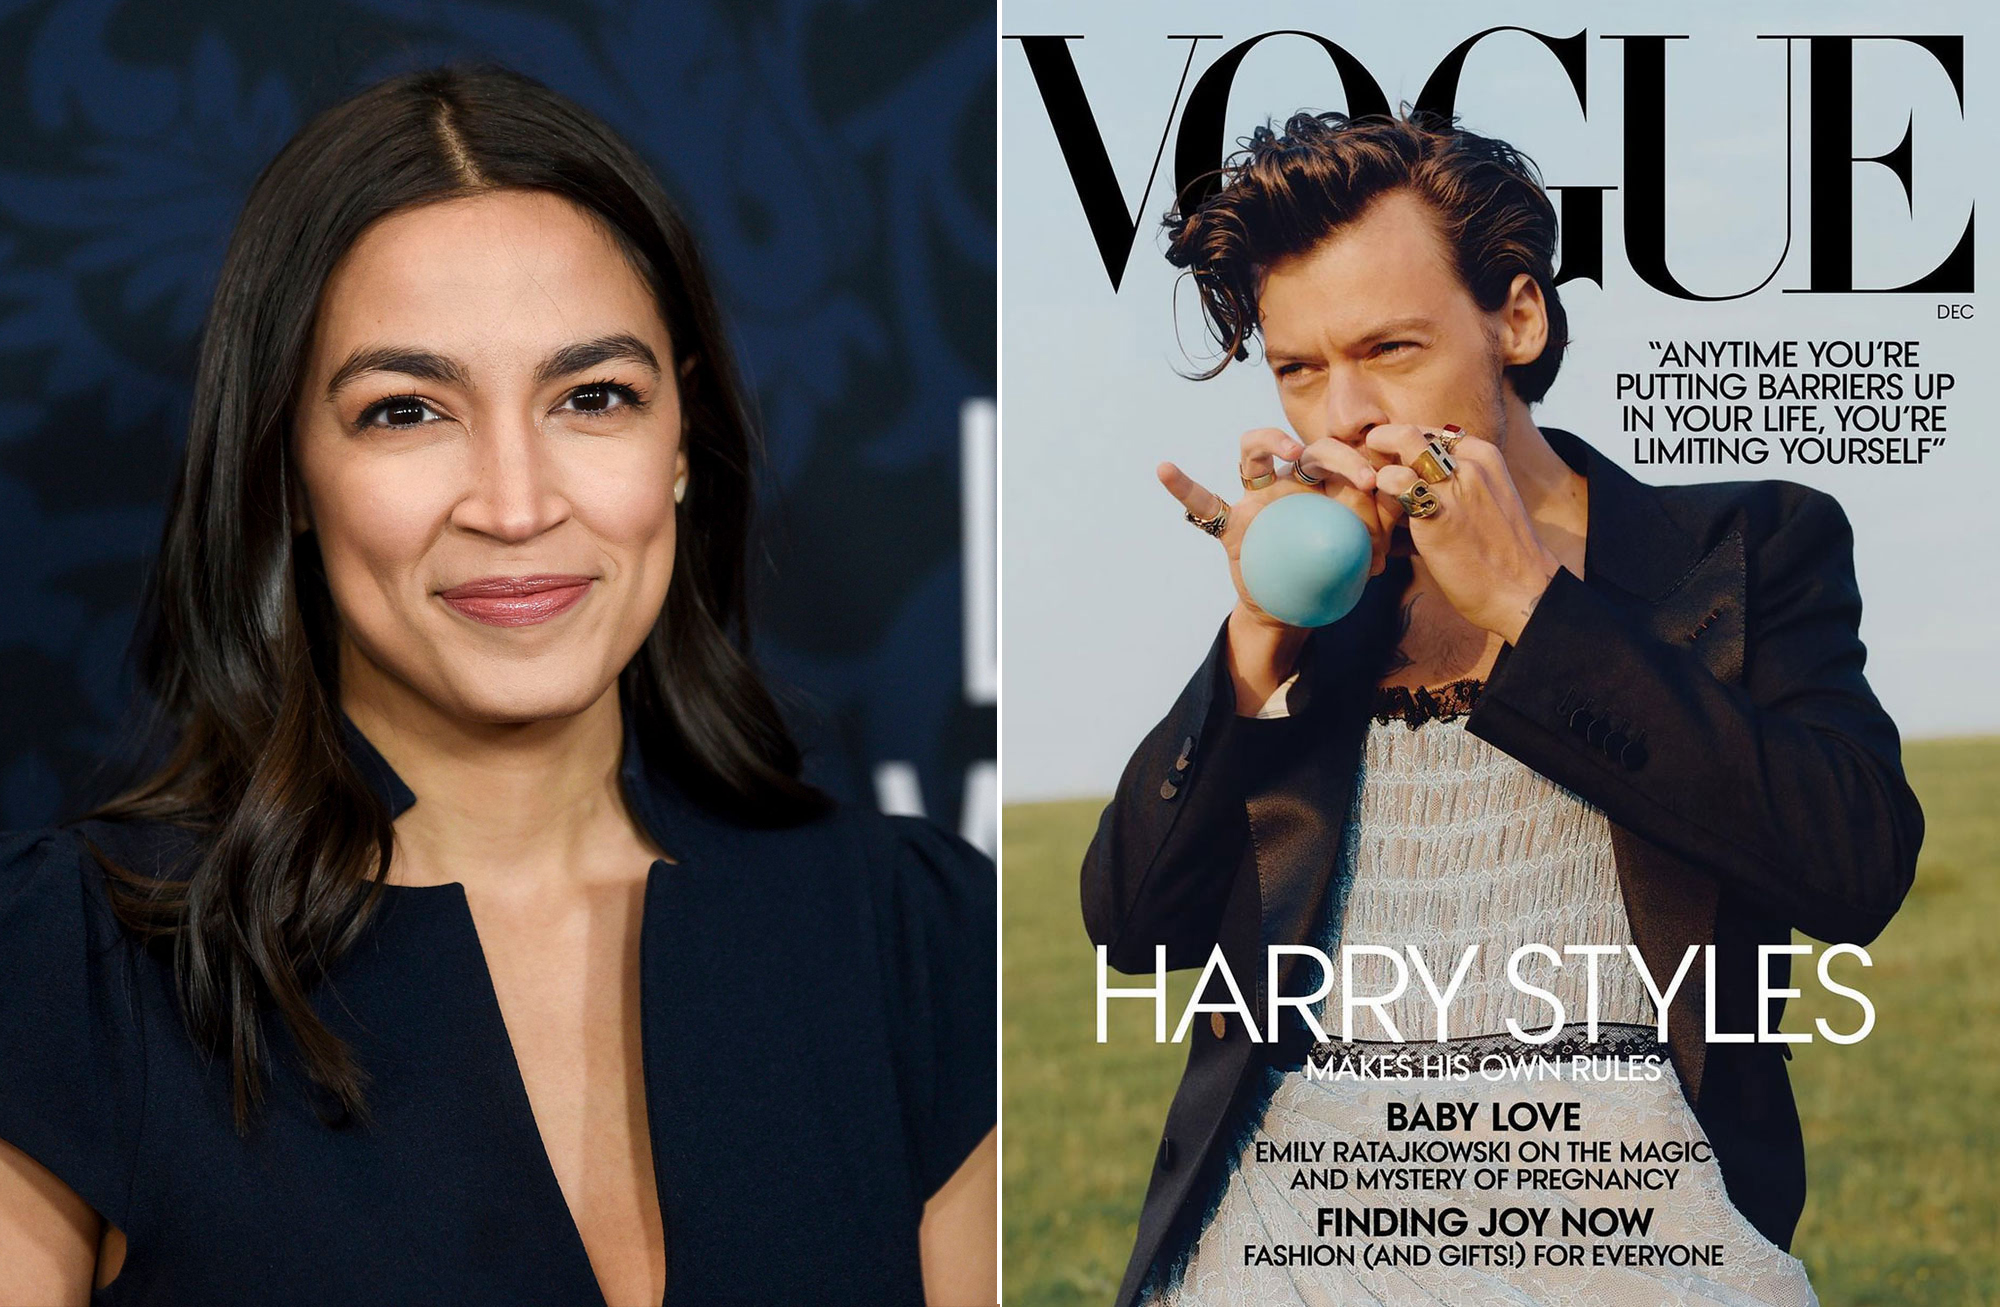 Alexandra Ocasio-Cortez: Harry Styles' 'Vogue' Cover Has 'James Dean Vibes'